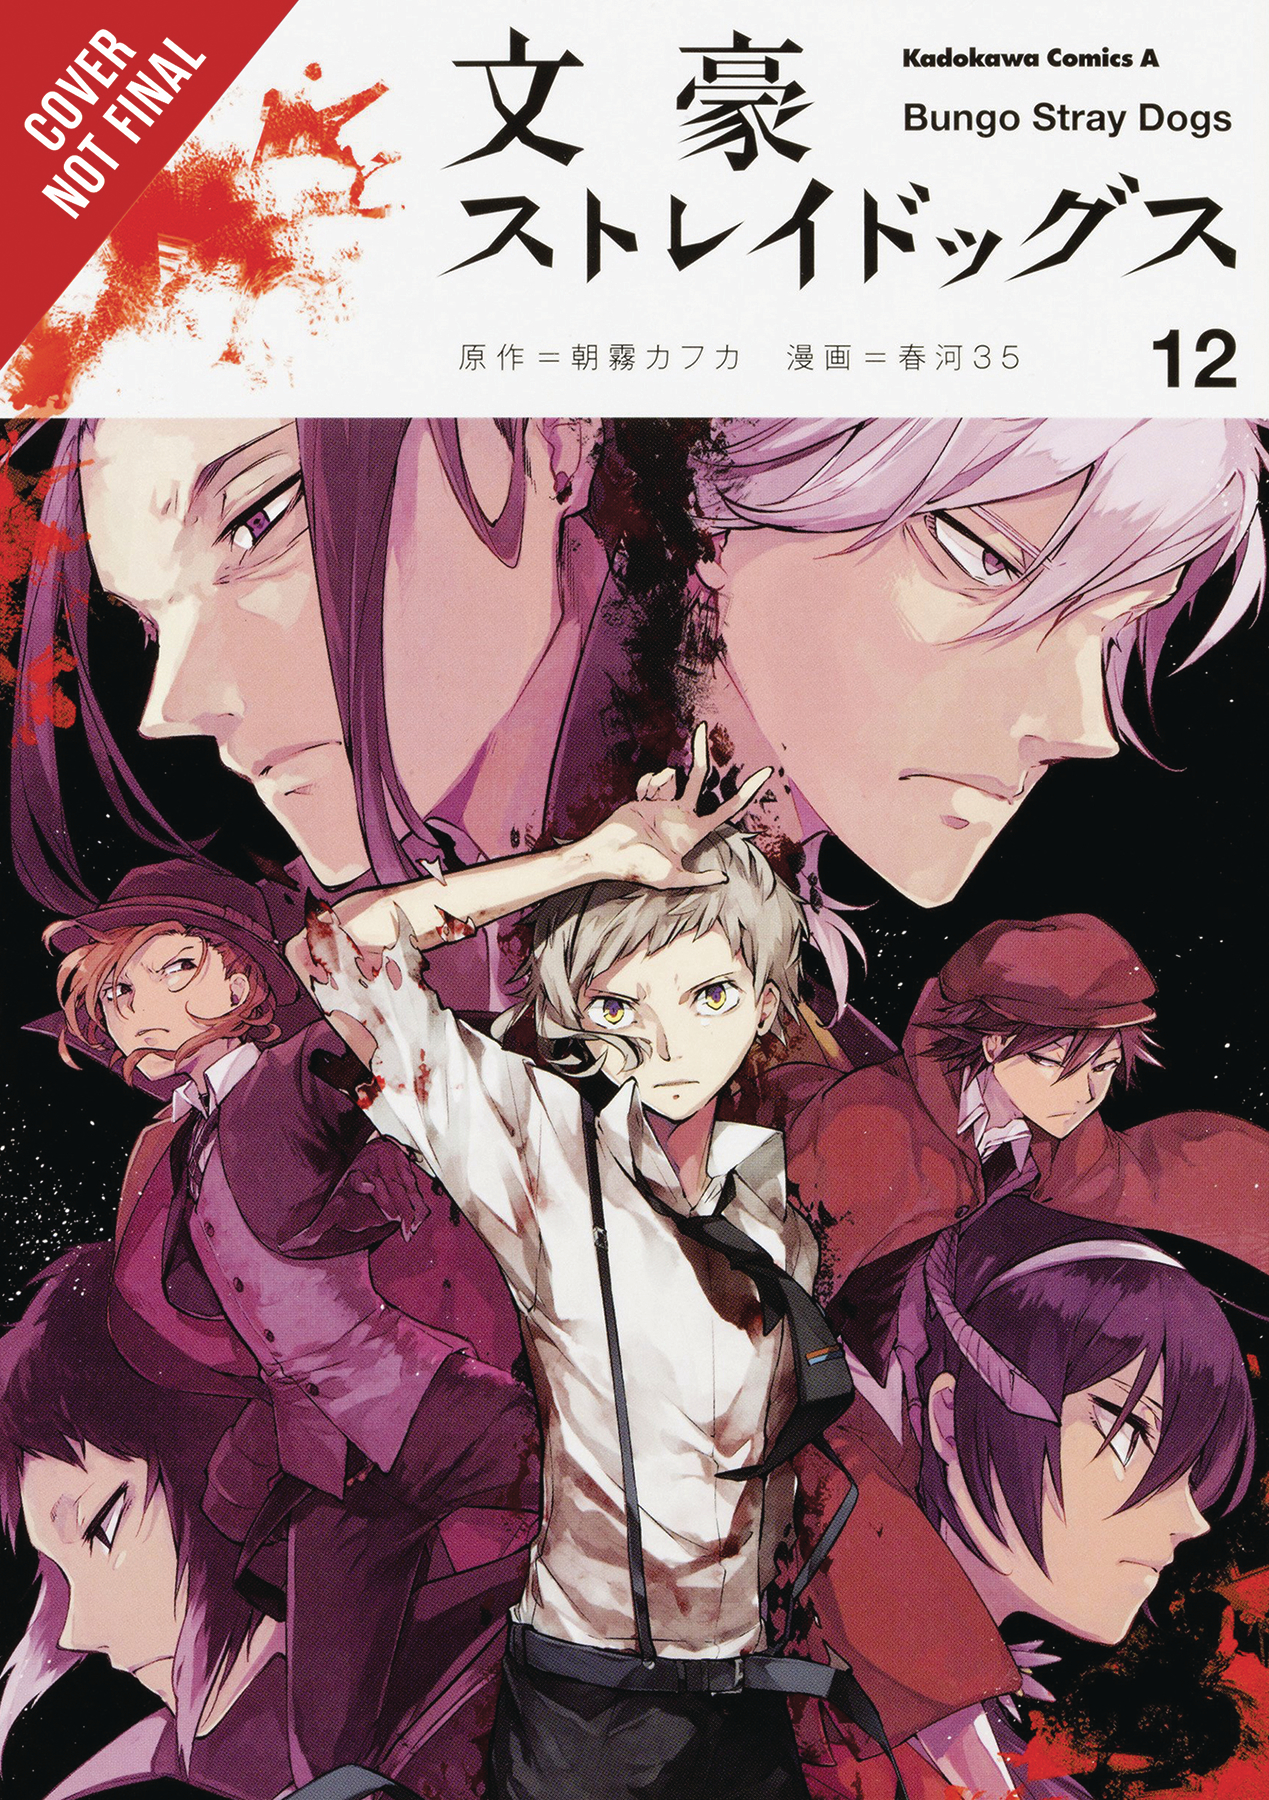 BUNGO STRAY DOGS GN VOL 12